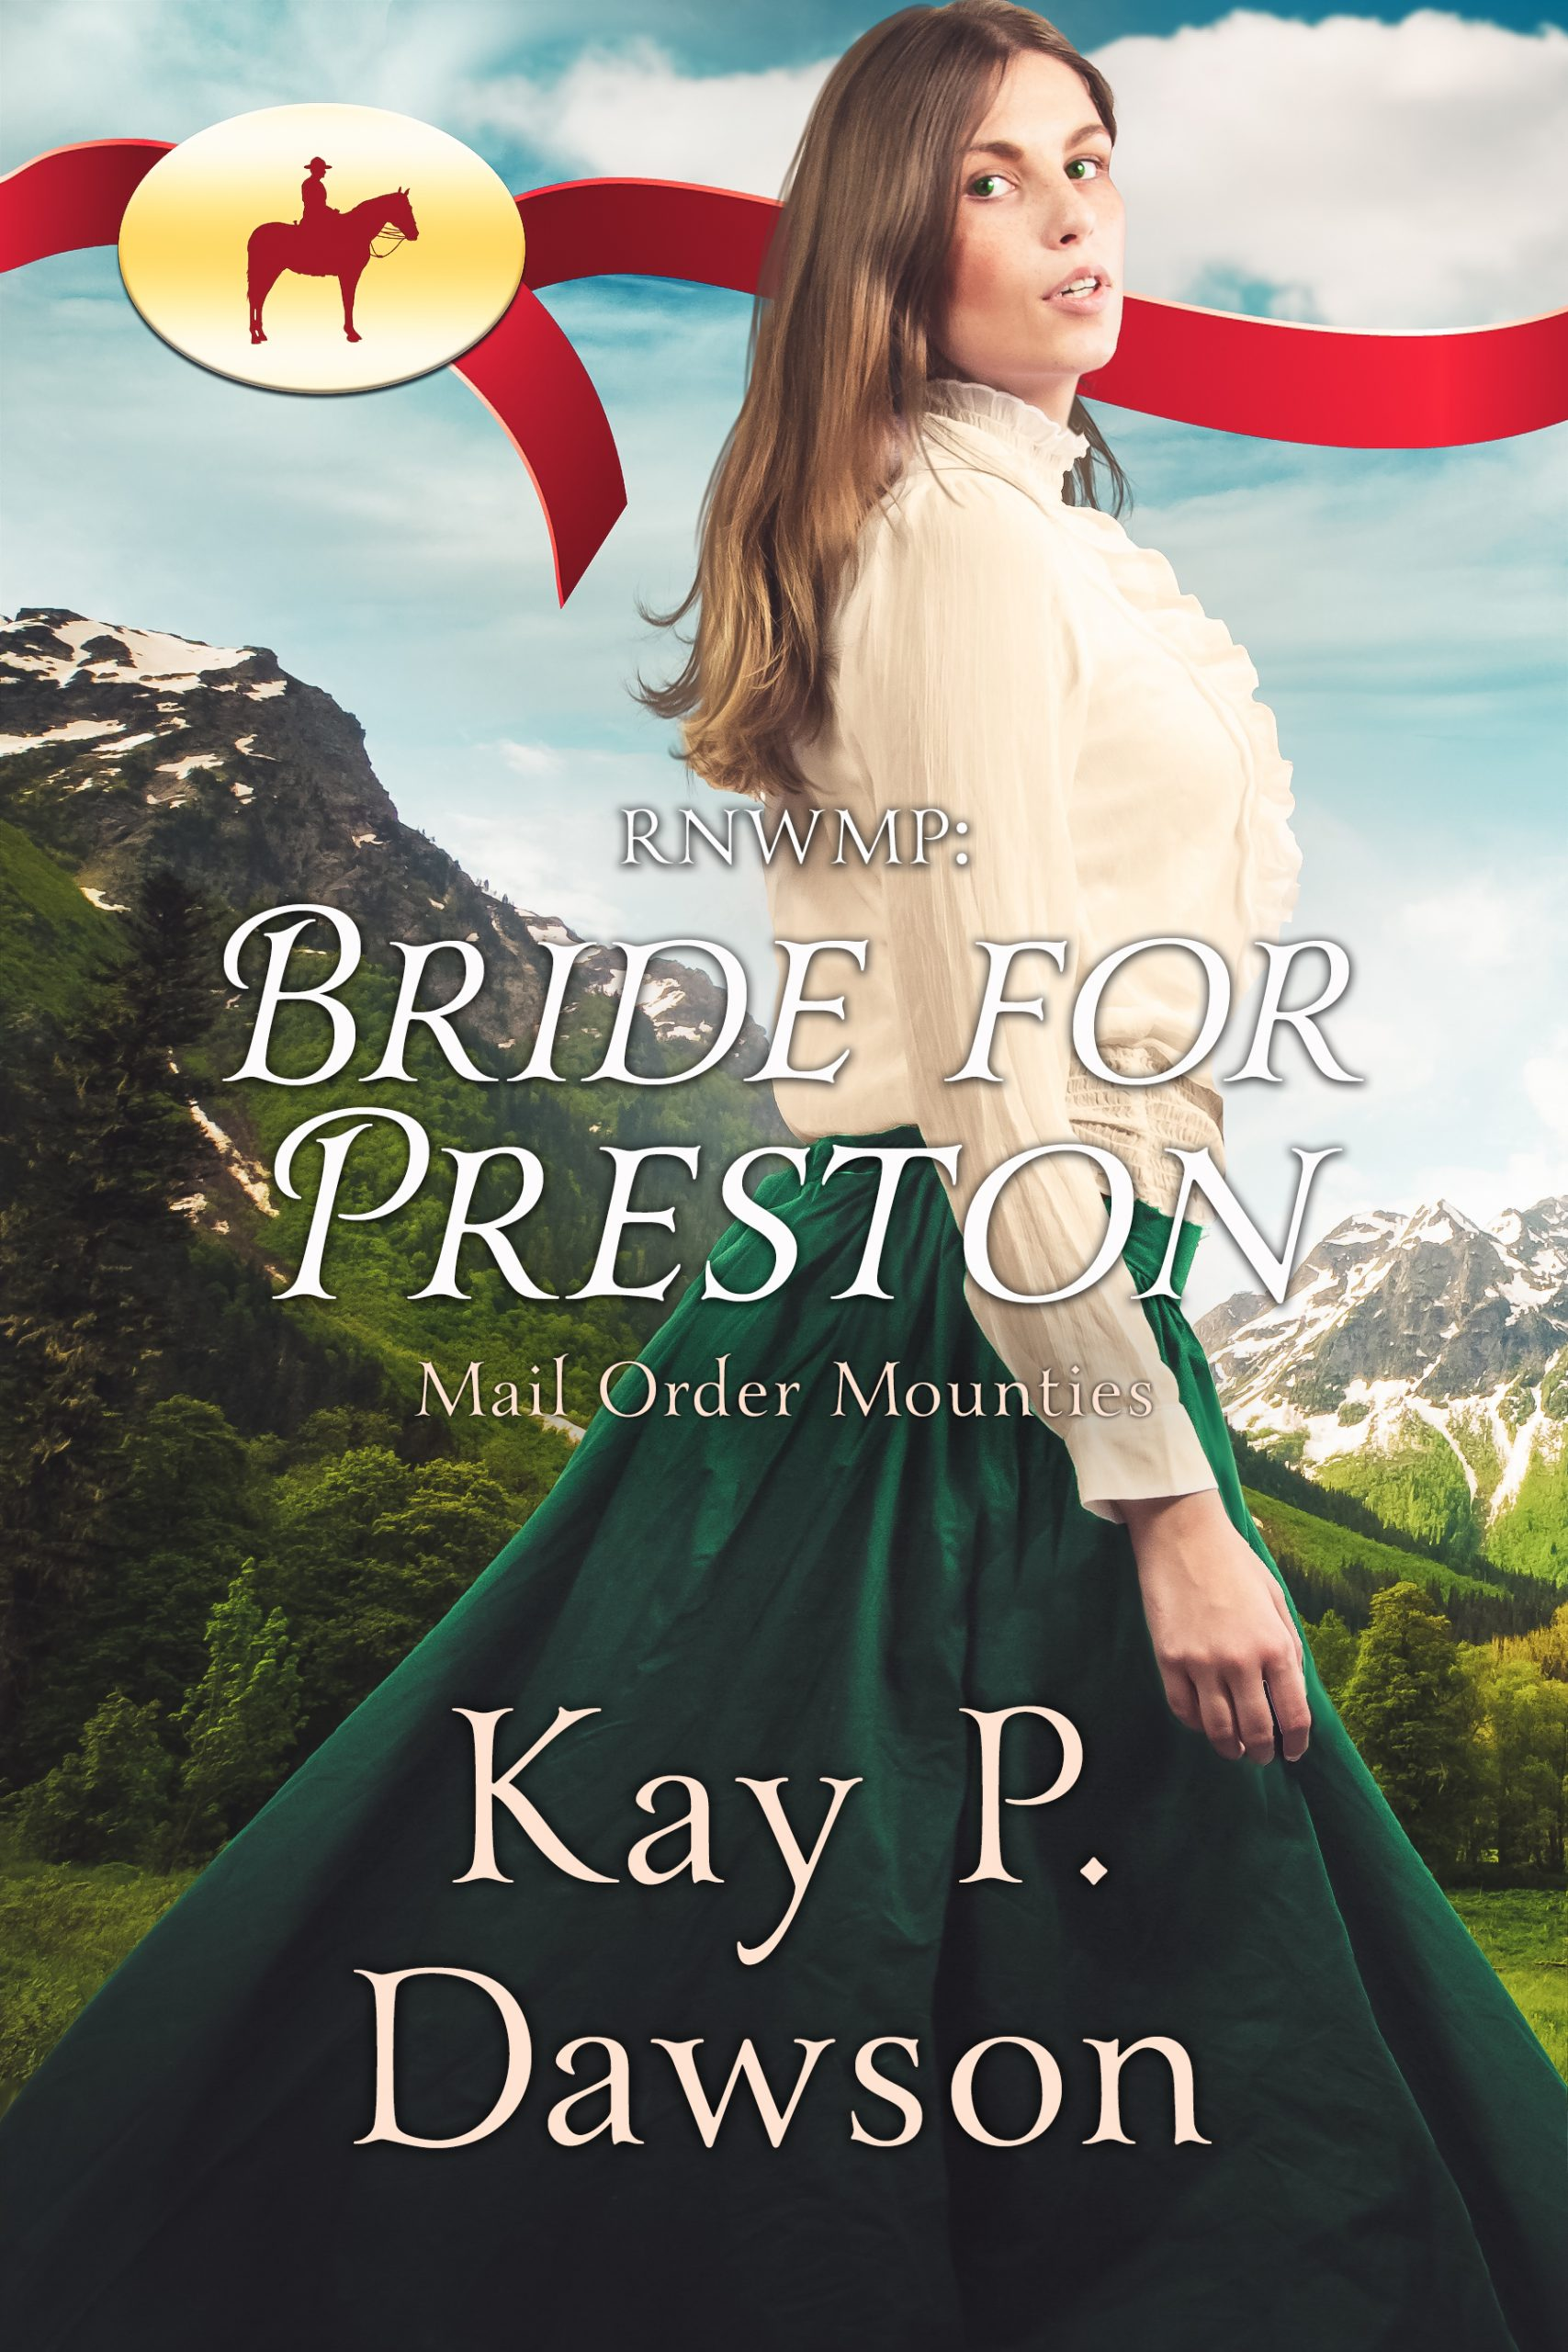 Bride for Preston - Mail Order Mounties